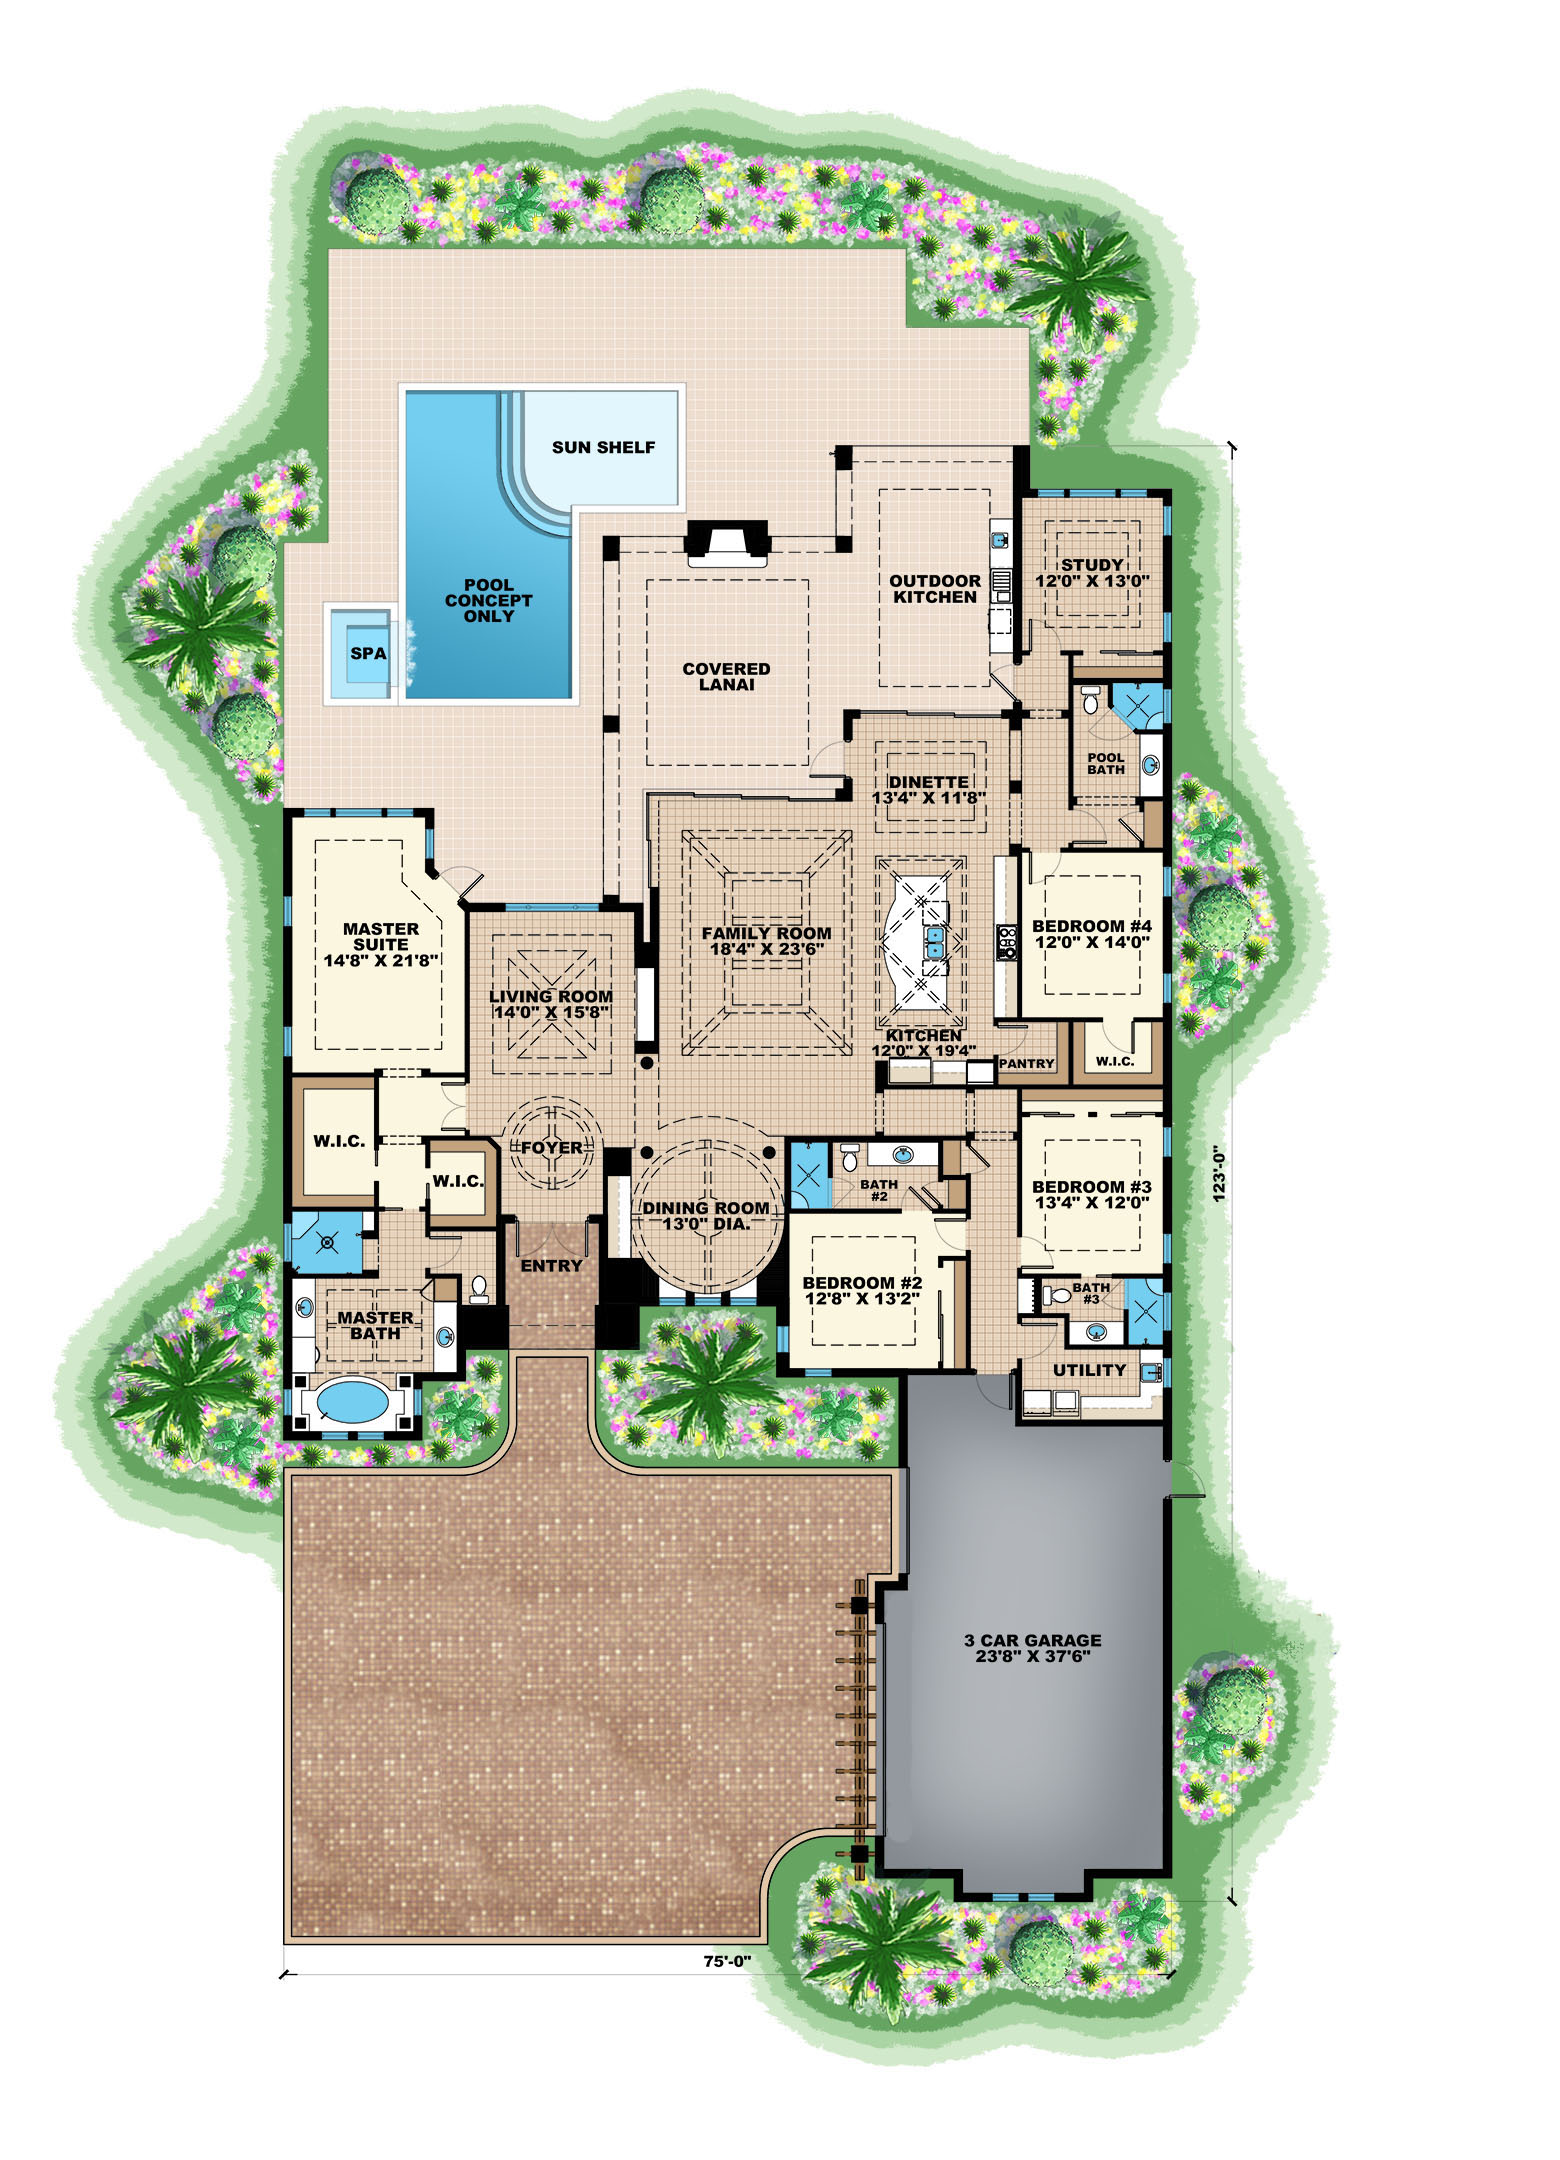 Design Your Own Icf Home Contemporary House Plan 175 1129 4 Bedrm 3869 Sq Ft